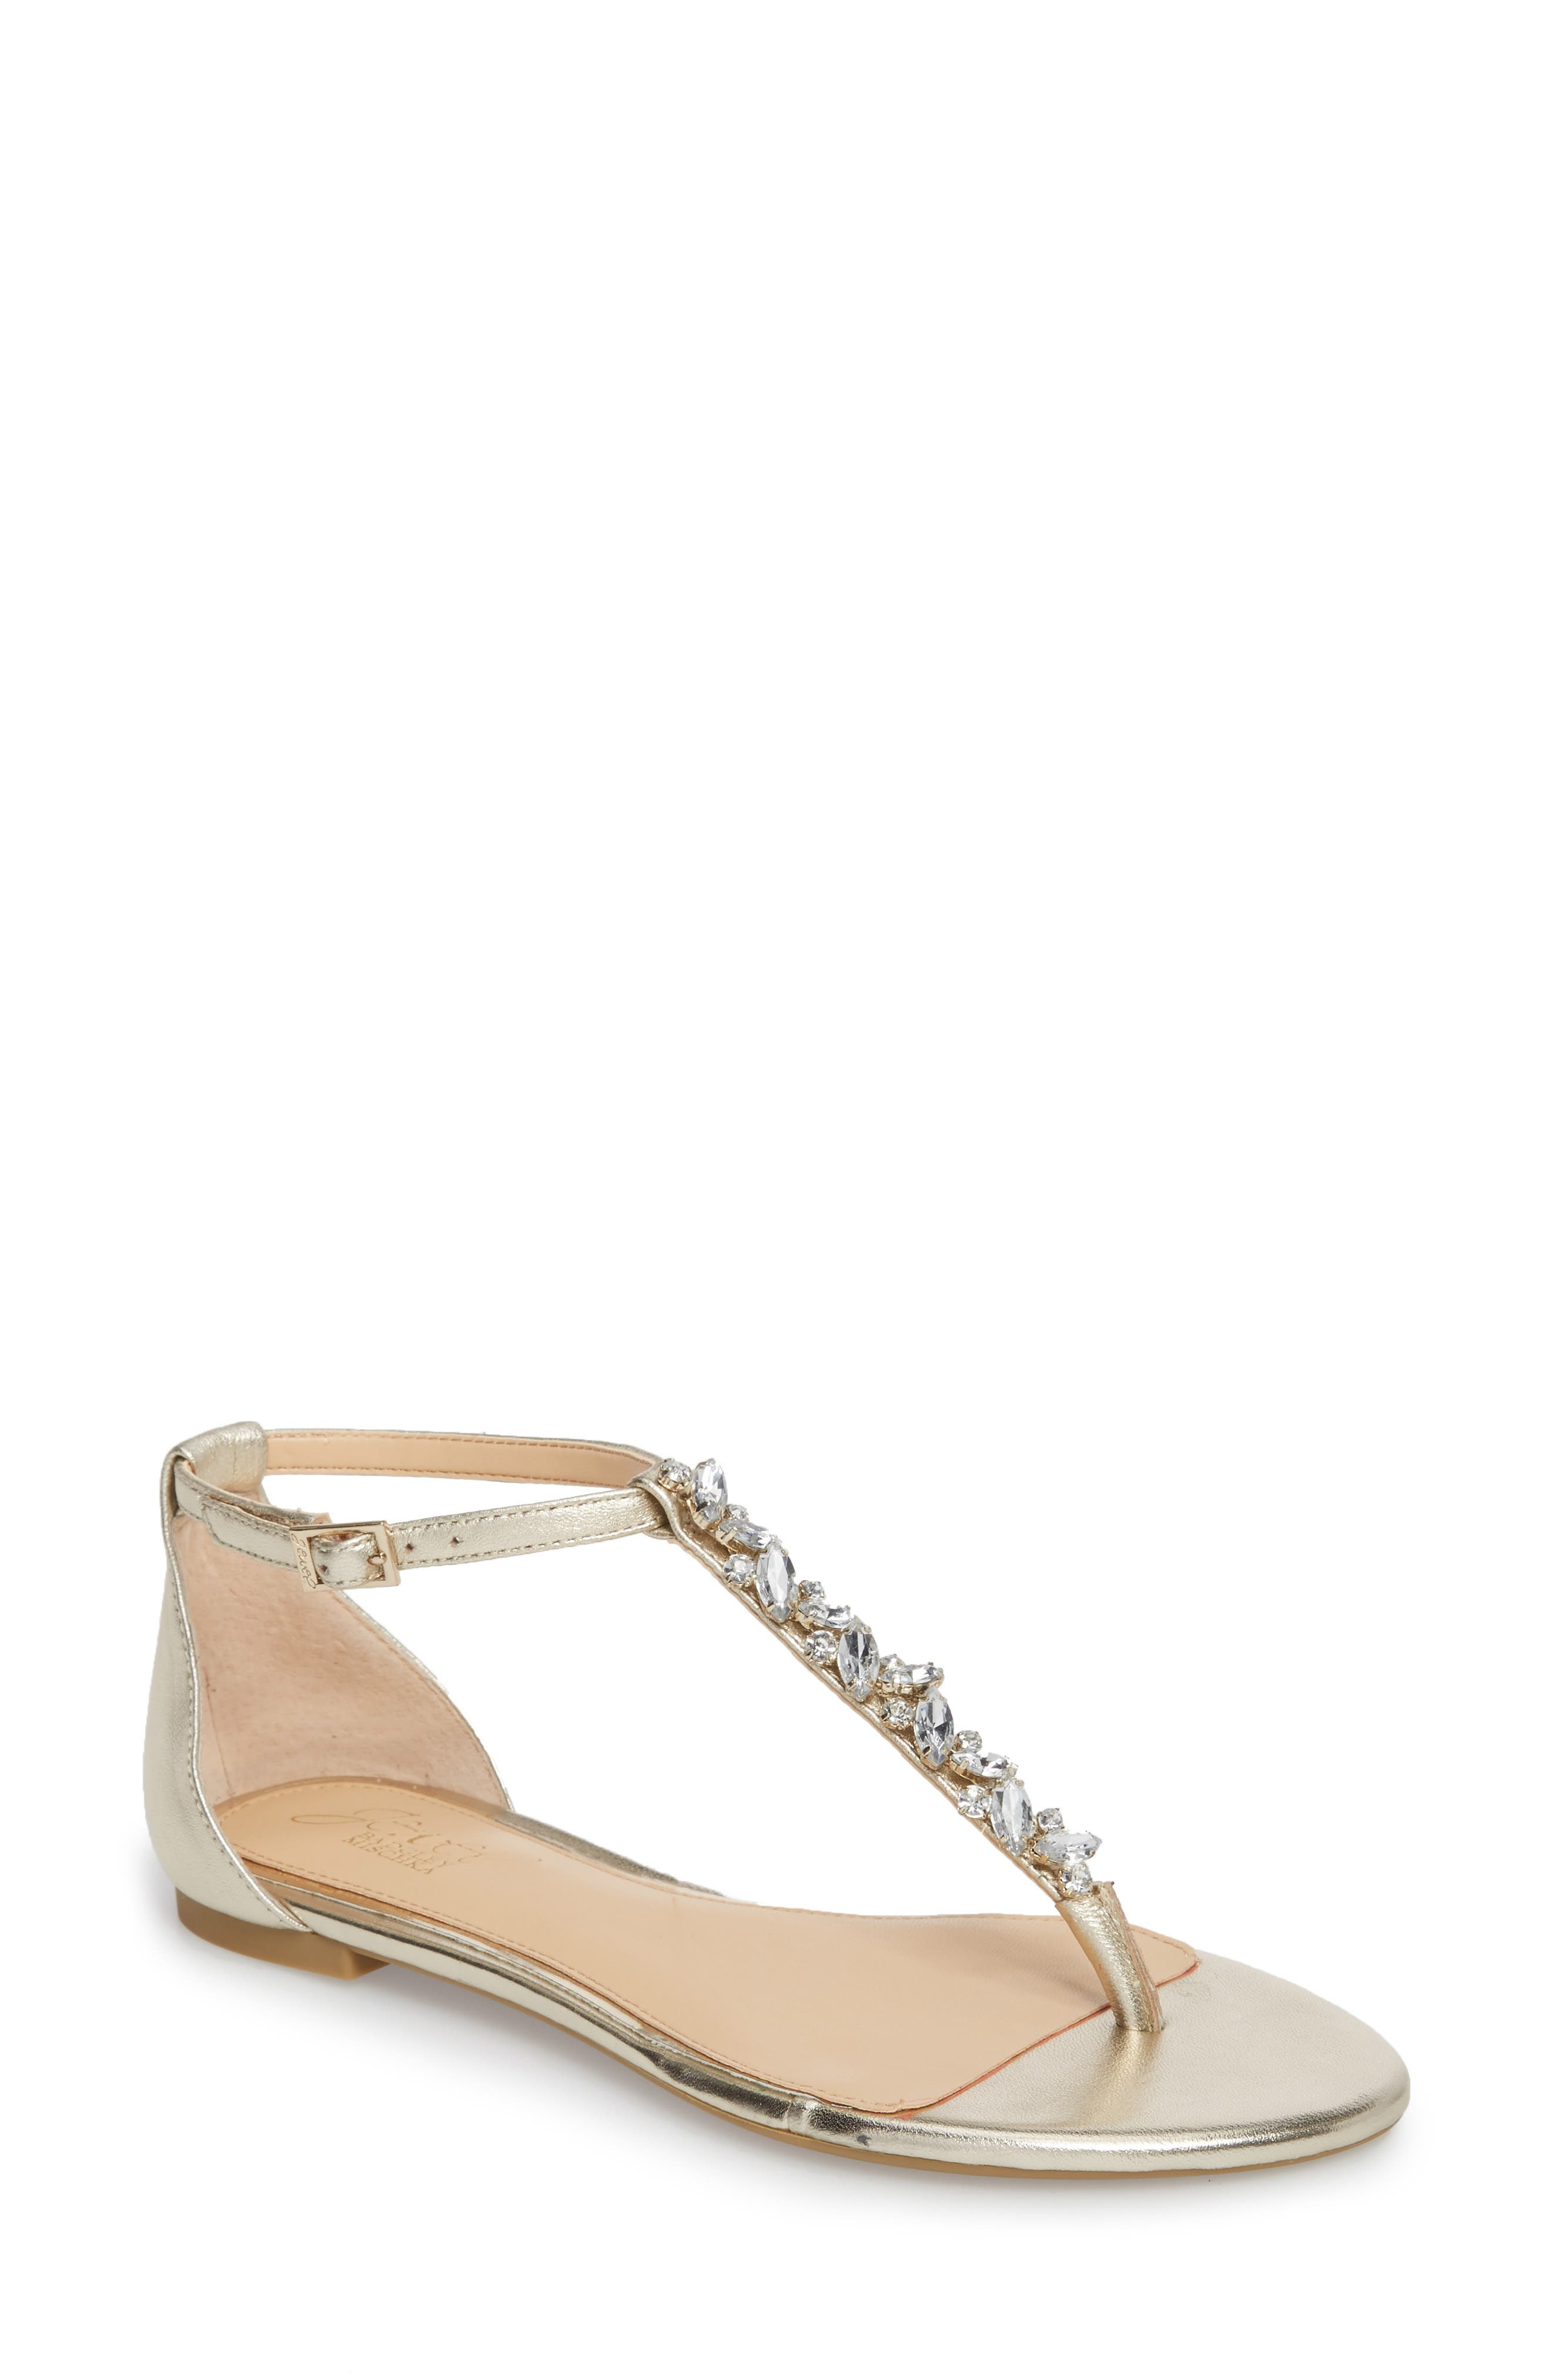 Carrol Embellished T-Strap Sandal,                         Main,                         color, GOLD METALLIC LEATHER